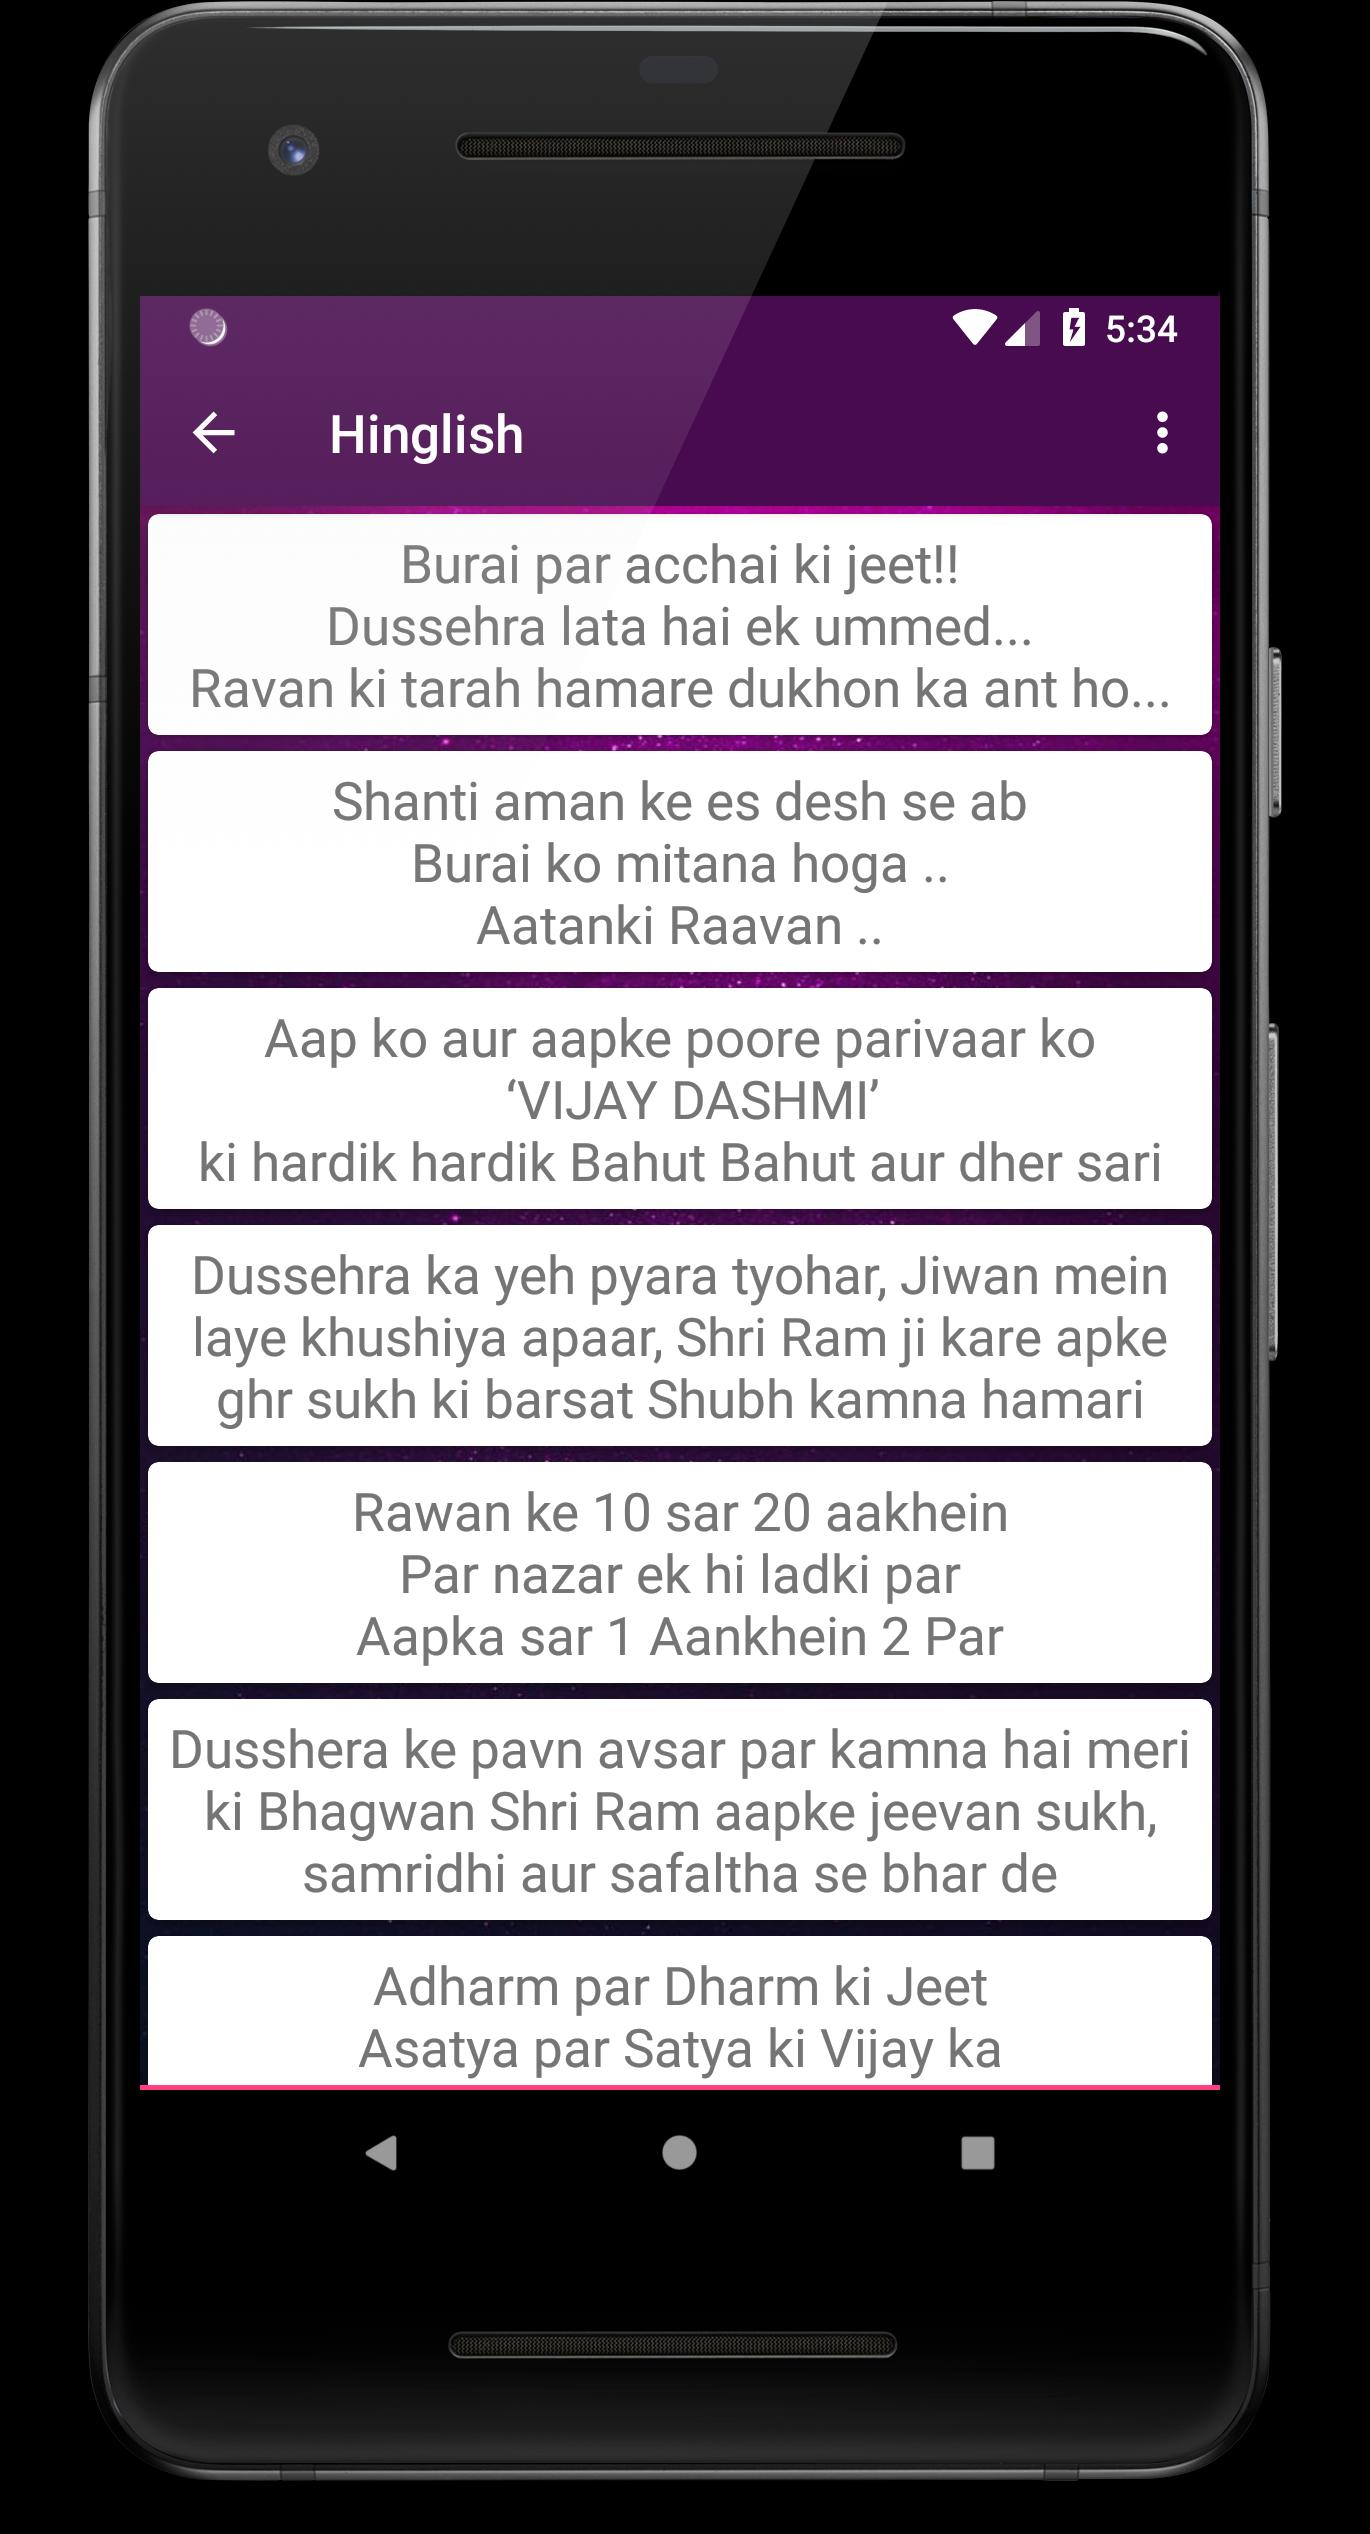 Dussehra Wishes And Quotes 2018 for Android - APK Download